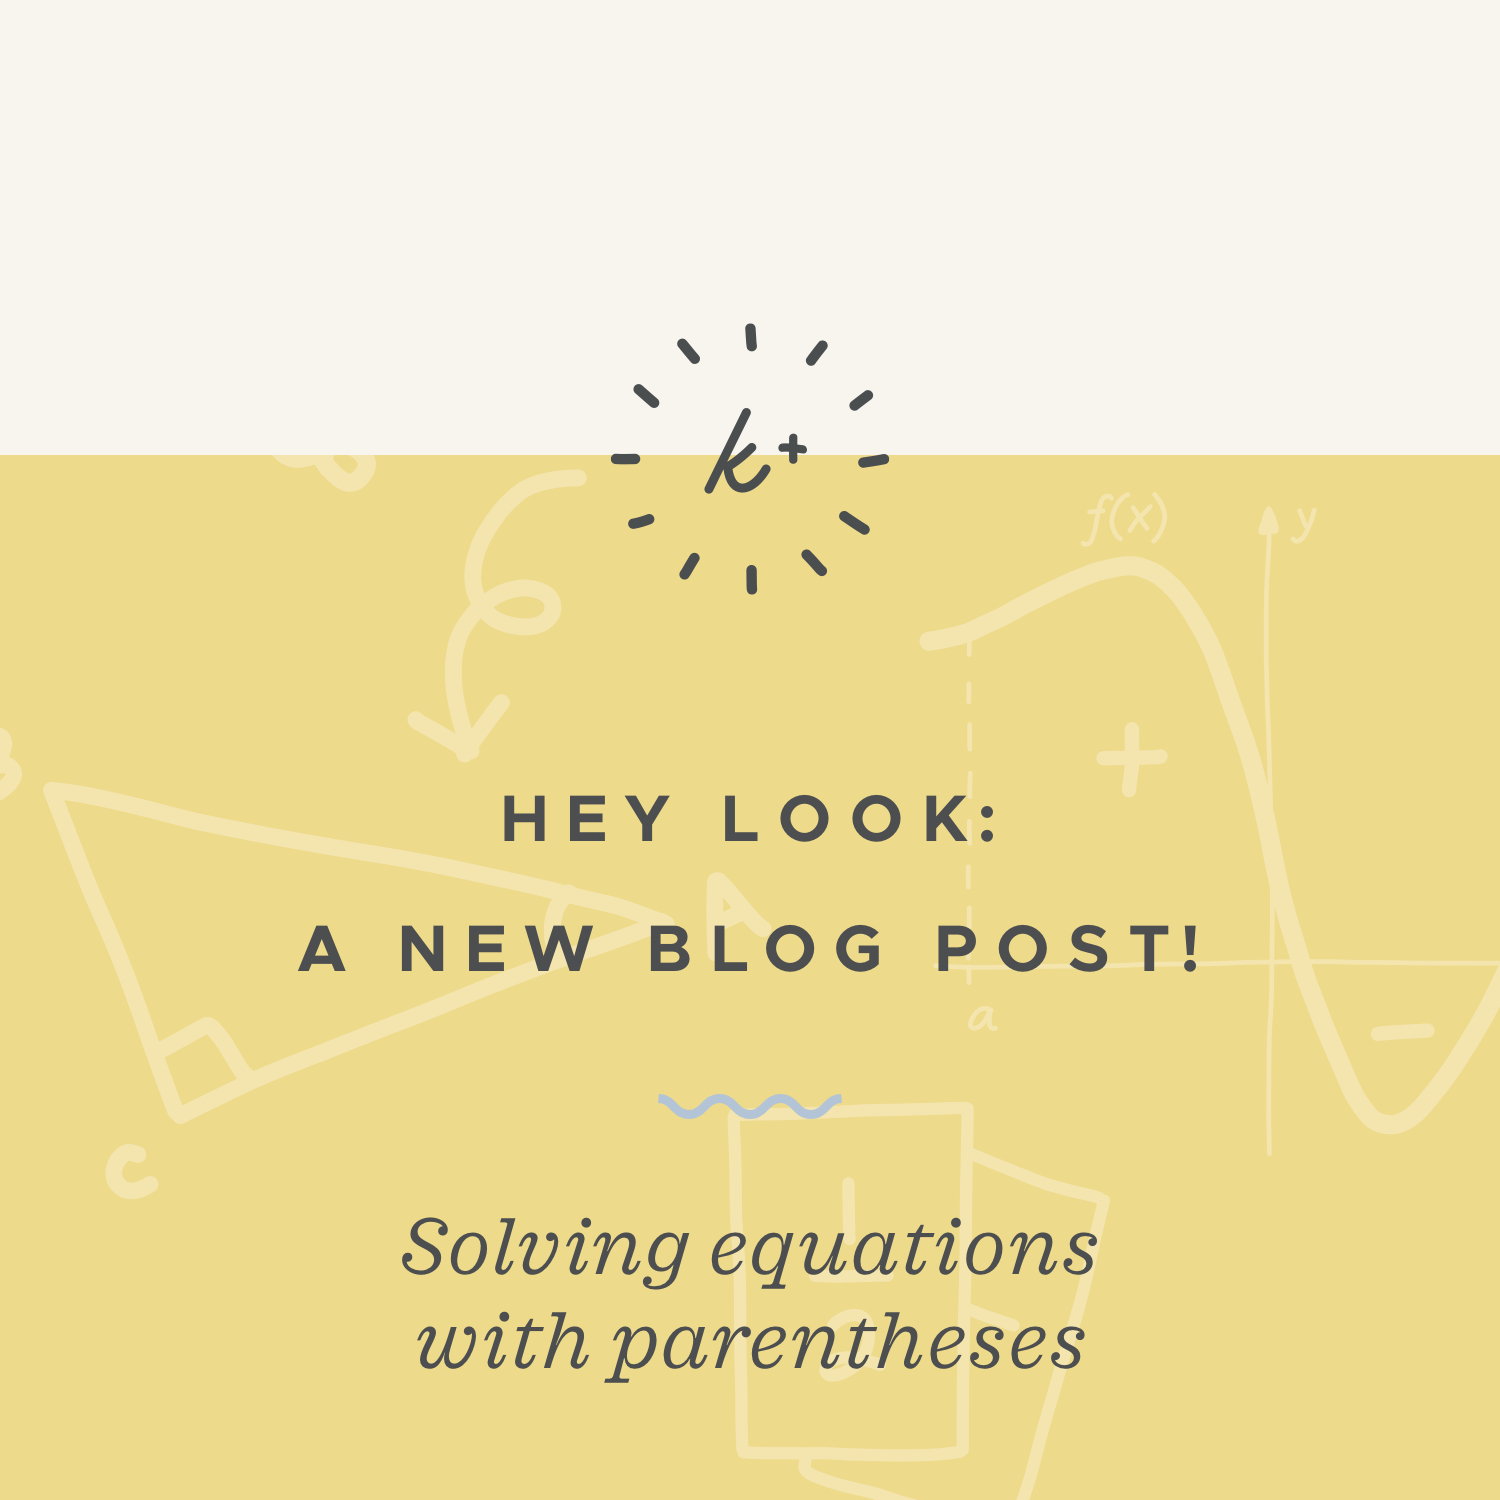 solving equations with parentheses.jpeg